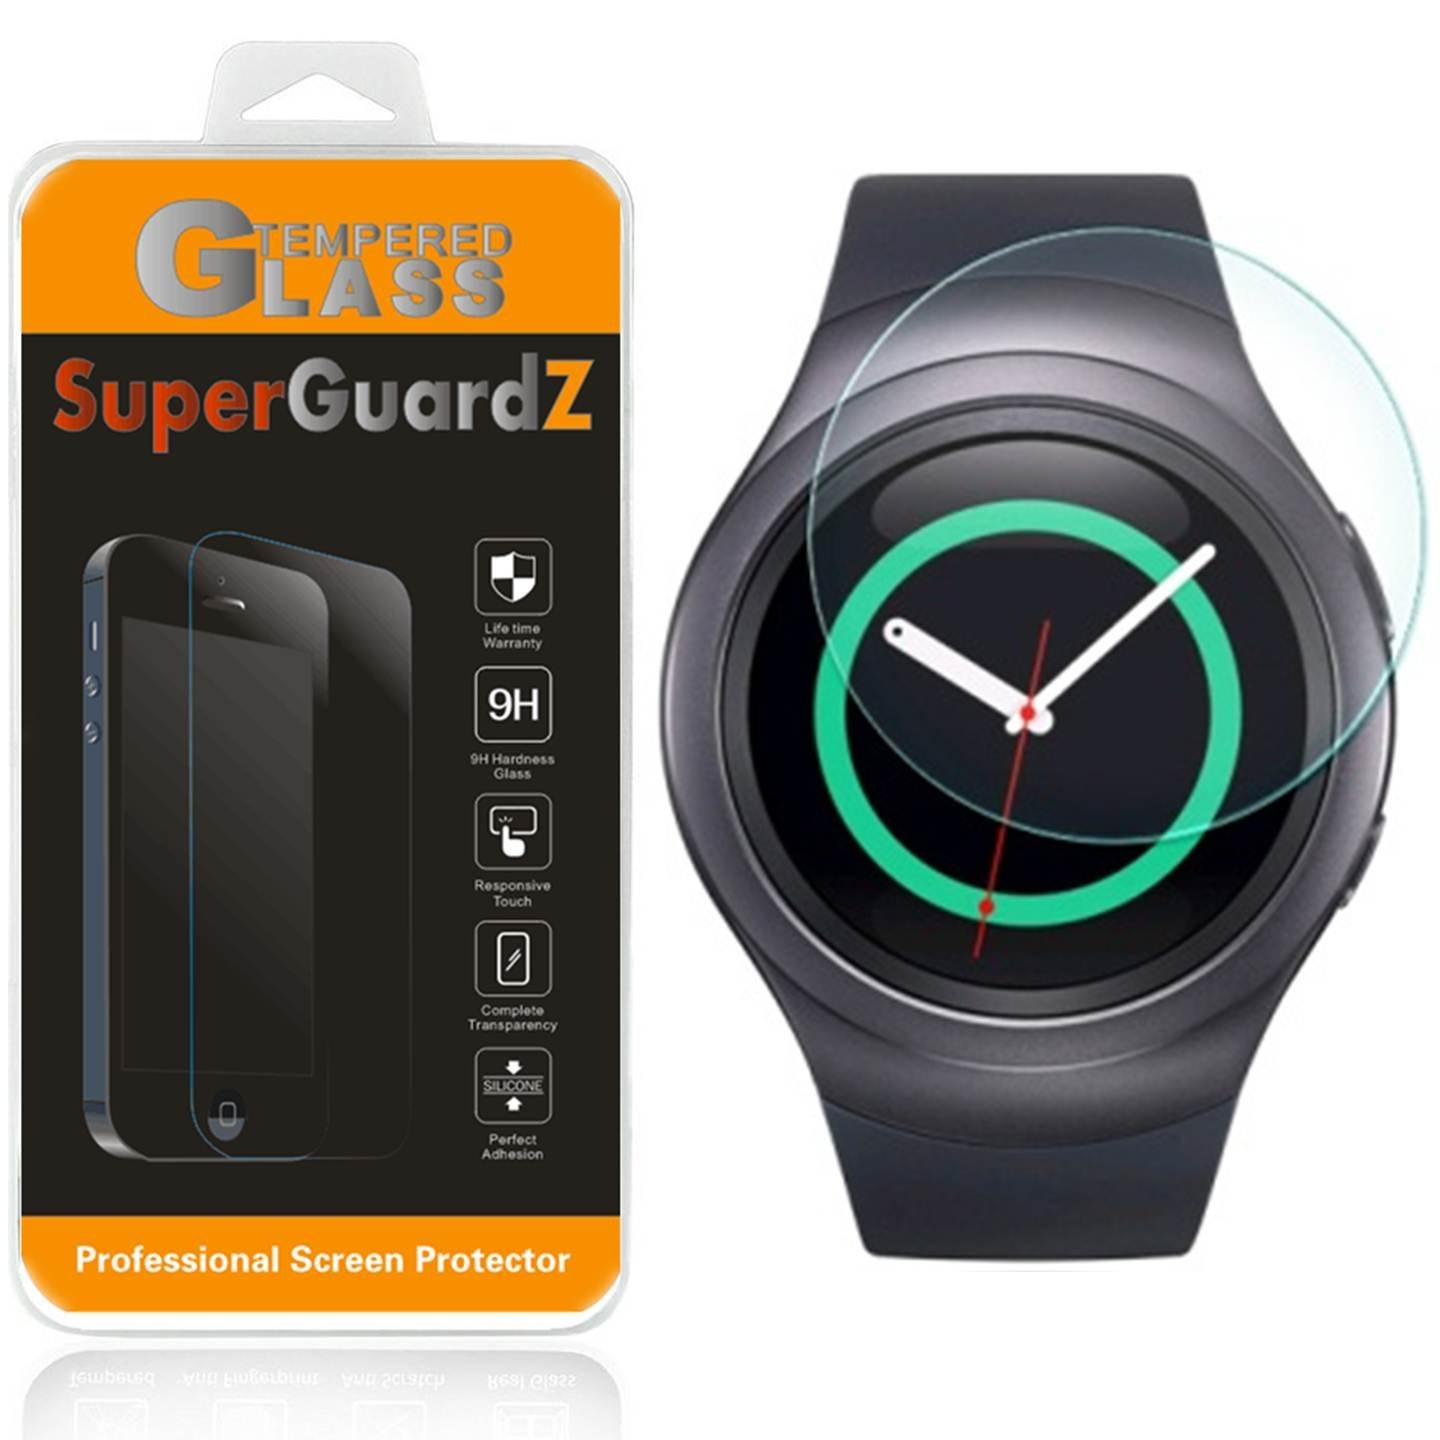 [3-Pack] For Samsung Gear S2 Classic - SuperGuardZ Tempered Glass Screen Protector, 9H, Anti-Scratch, Anti-Bubble, Anti-Fingerprint